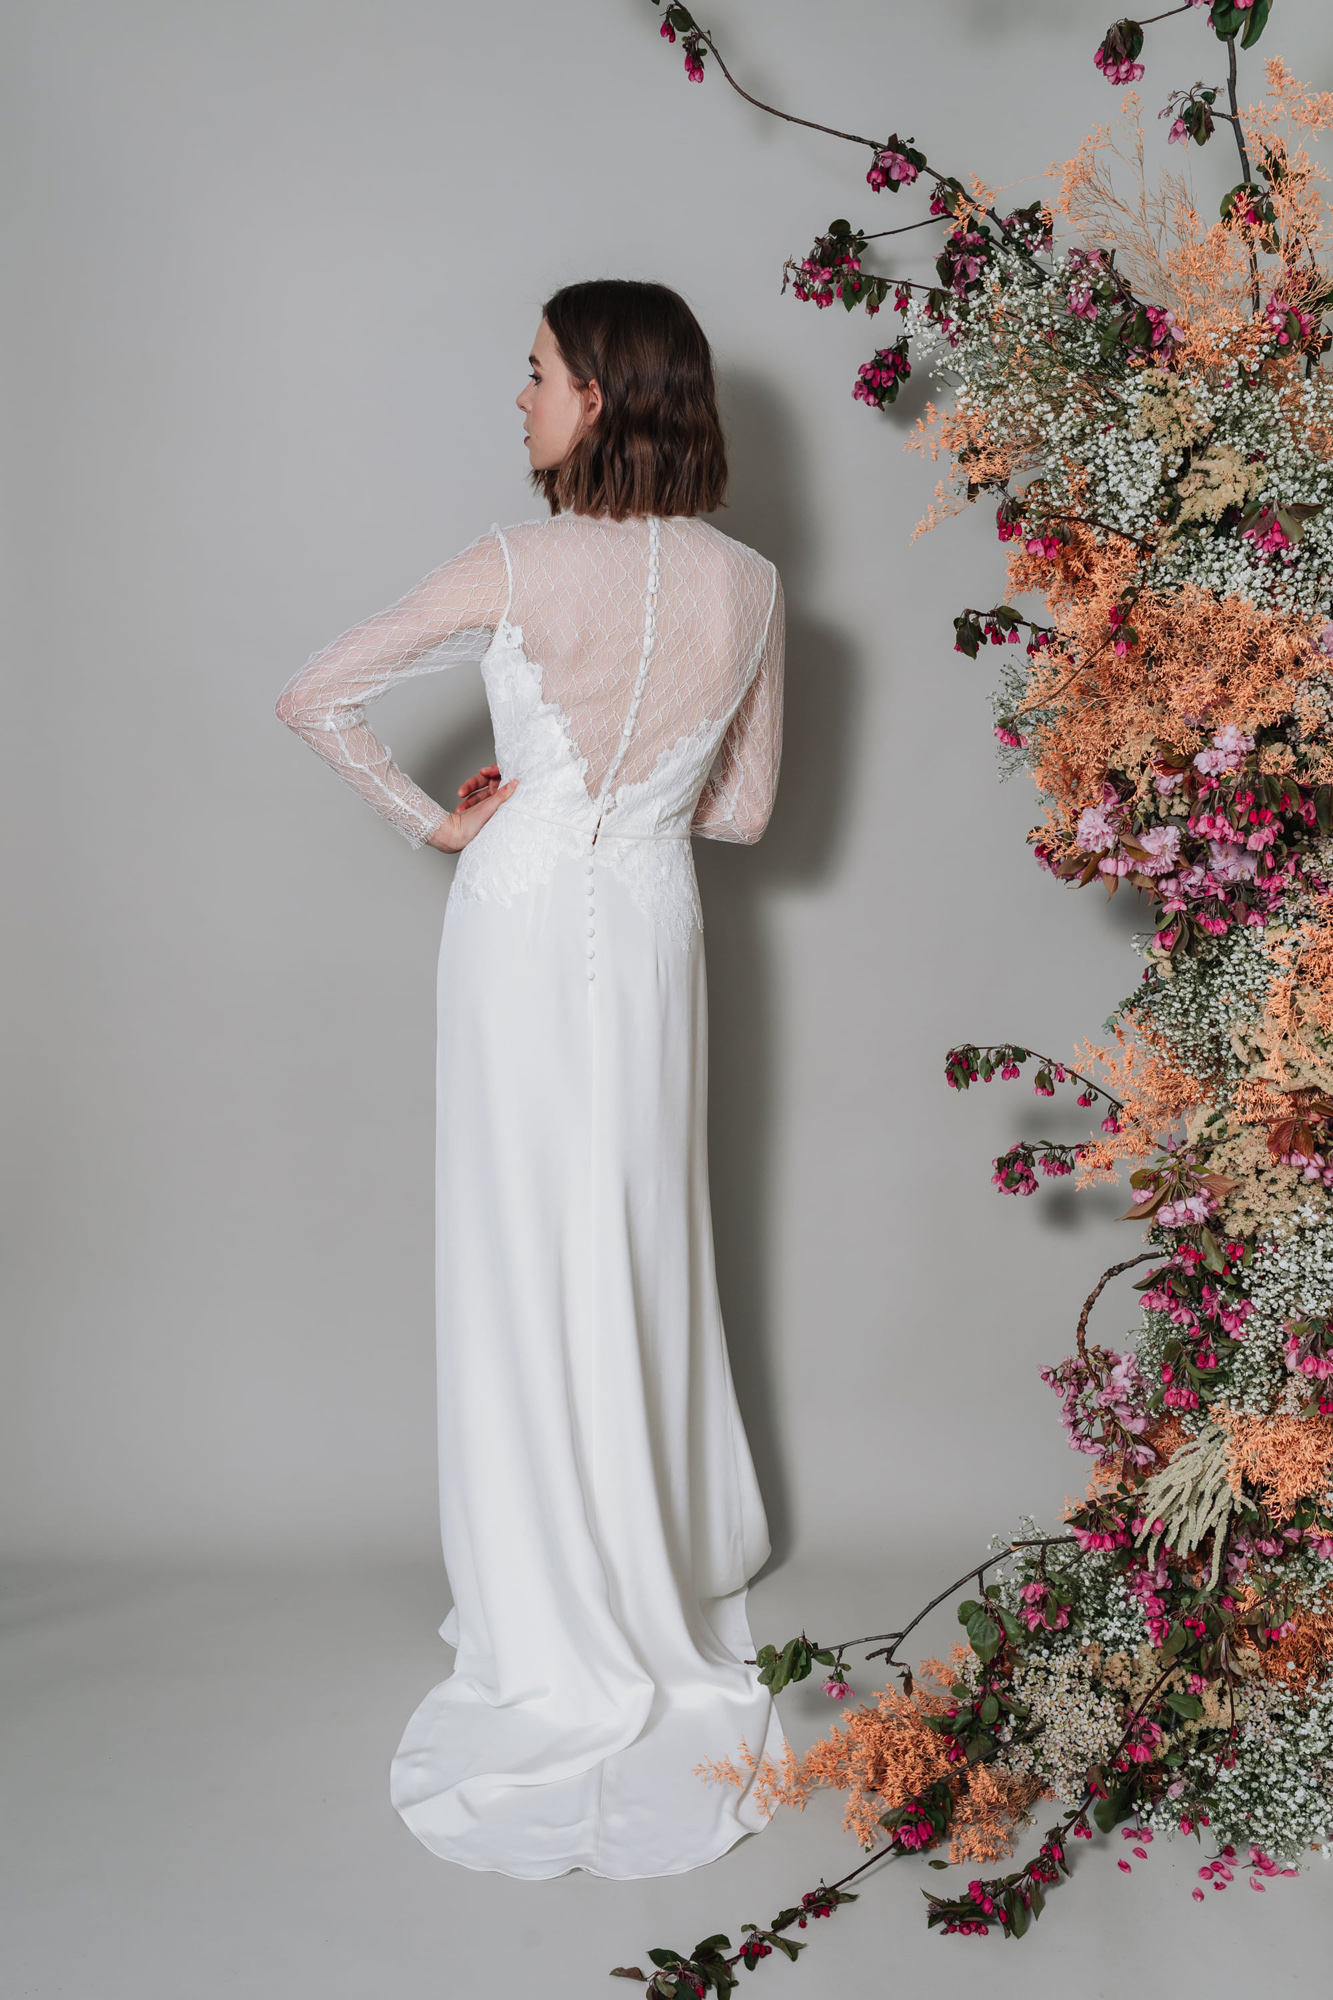 Kate-Beaumont-Sheffield-Geranium-Applique-Lace-Silk-Modern-Minimal-Long-Sleeved-Wedding-Gown-12.jpg